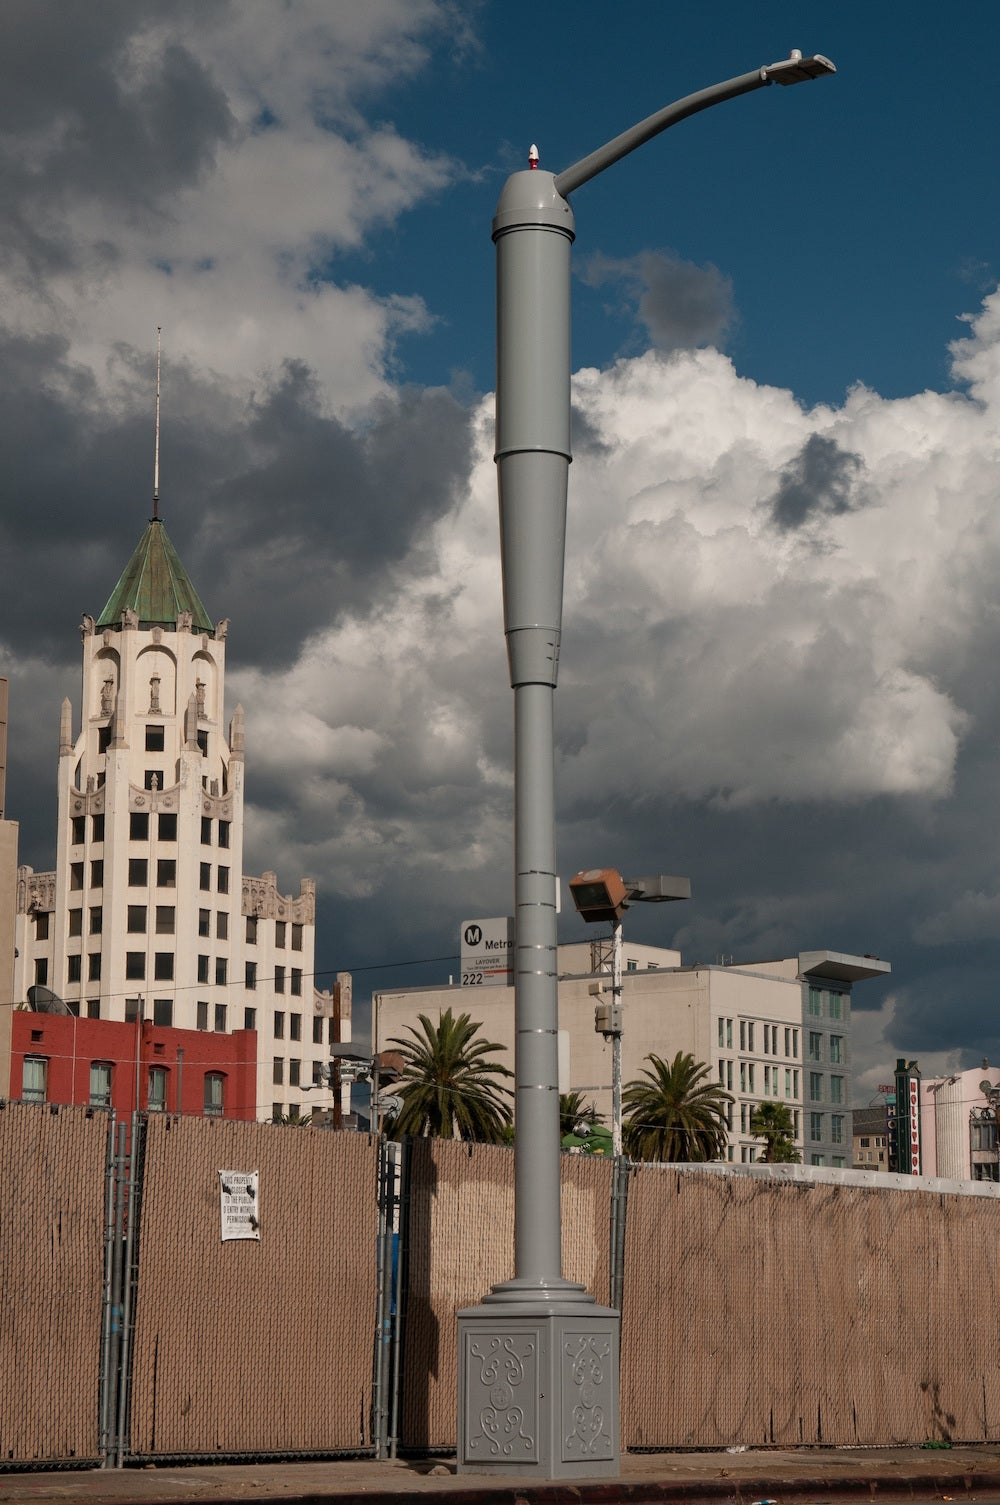 LA's New Streetlamps Will Keep Cell Service Running After an Earthquake